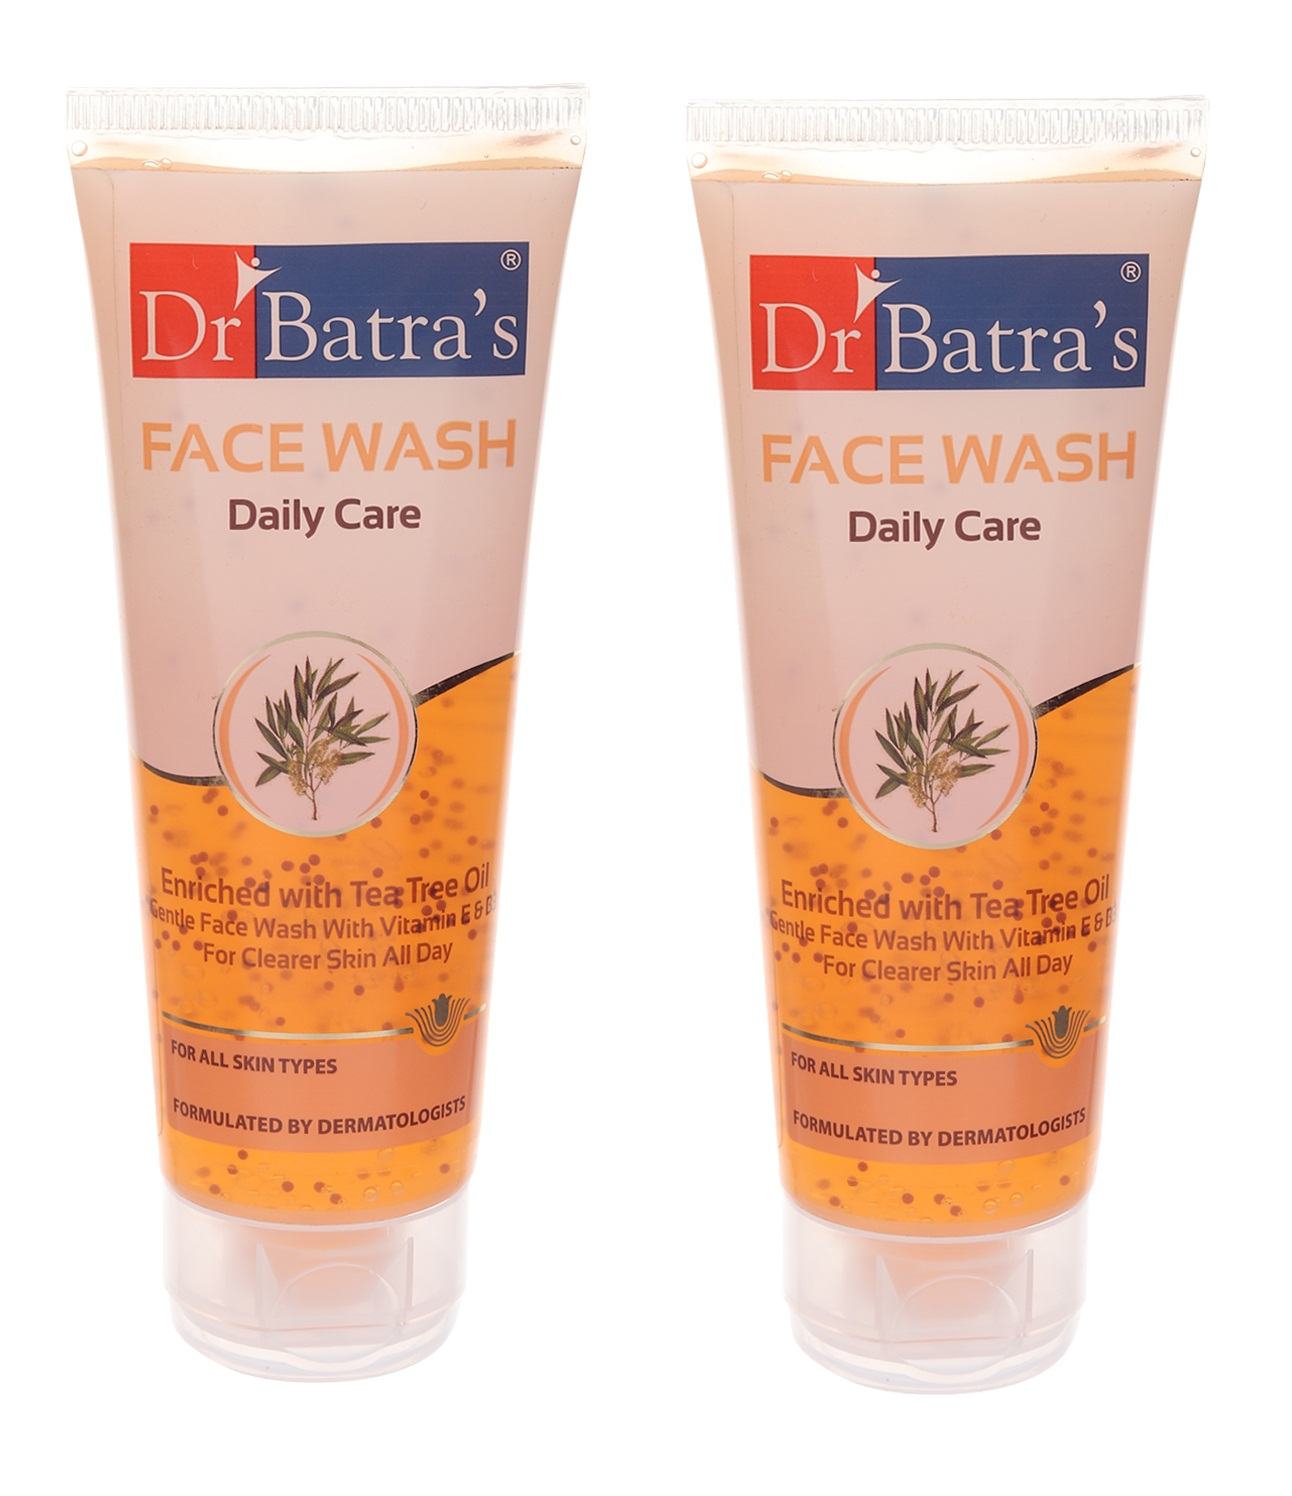 Dr Batra's | Dr Batra's Face Wash Daily Care Enriched With Tea Tree Oil - 100 gm (Pack of 2)